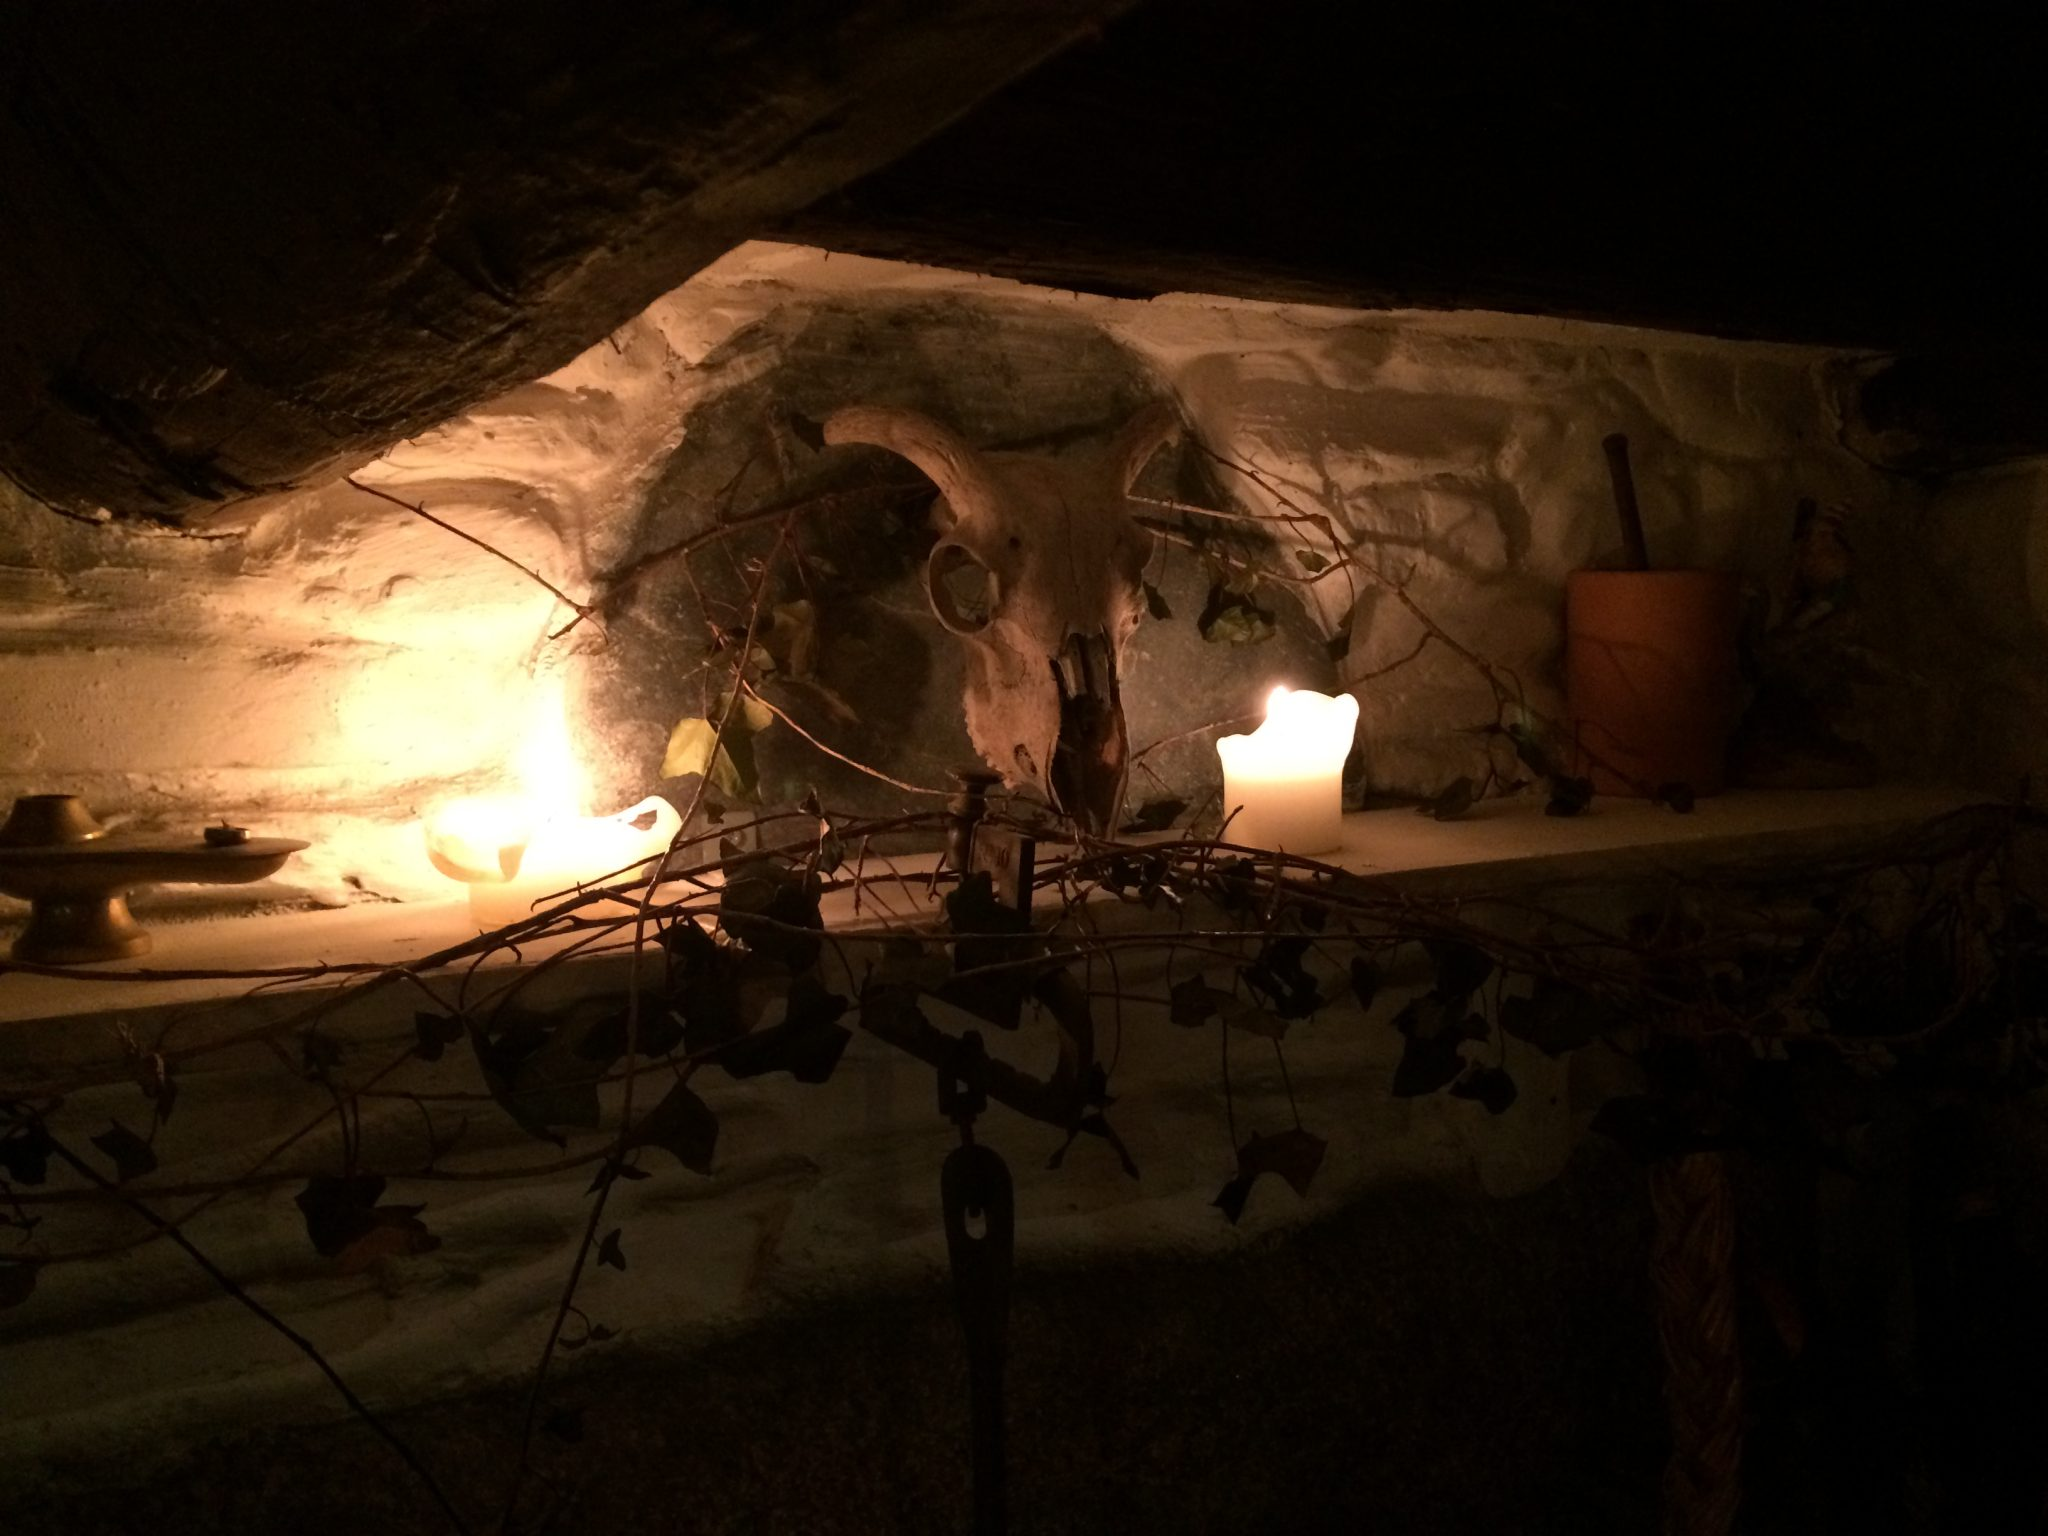 Candlelit Evenings – Photos of our last evening